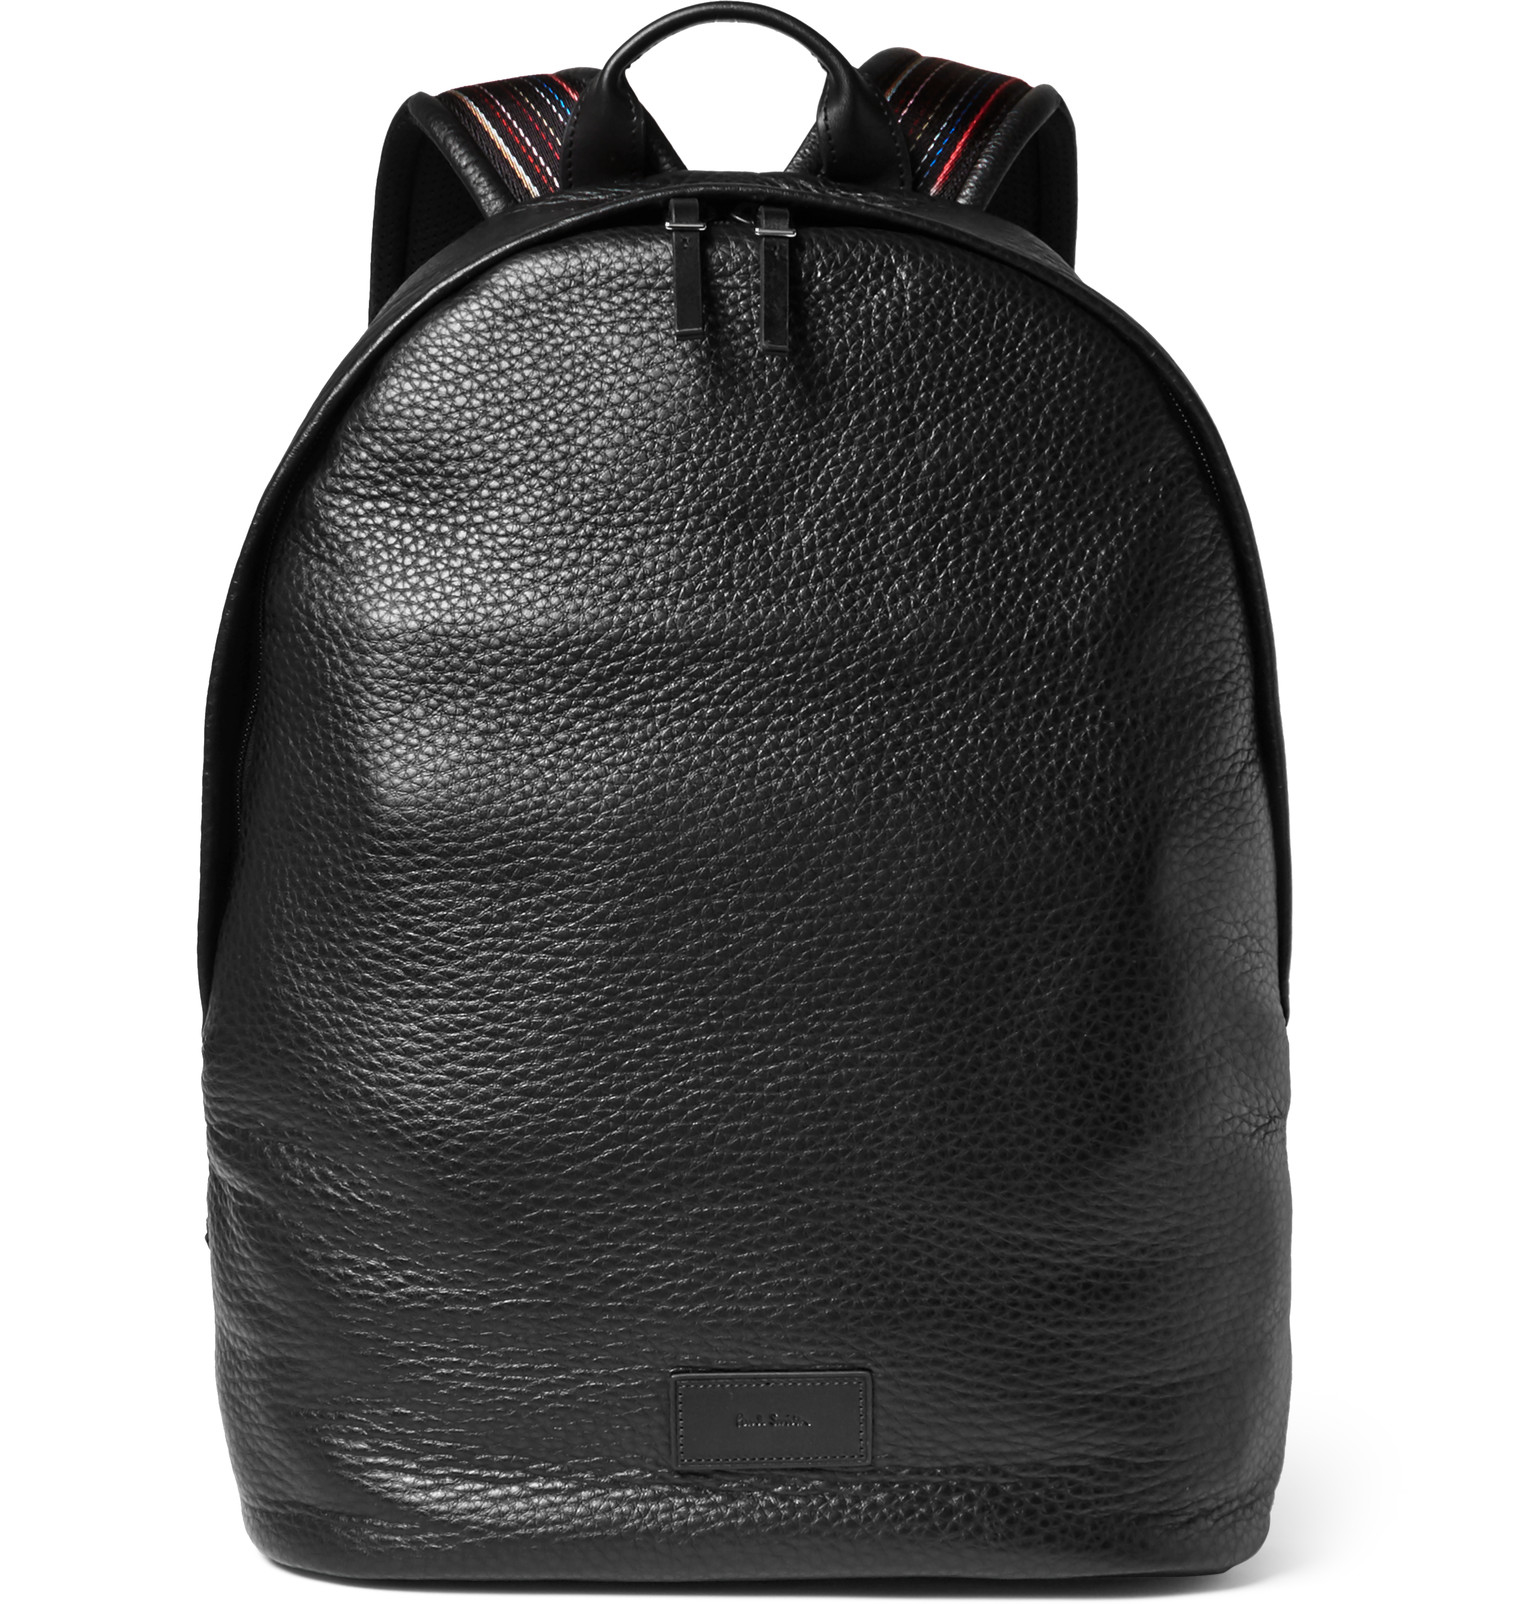 Paul smith Full-grain Leather Backpack in Black for Men | Lyst